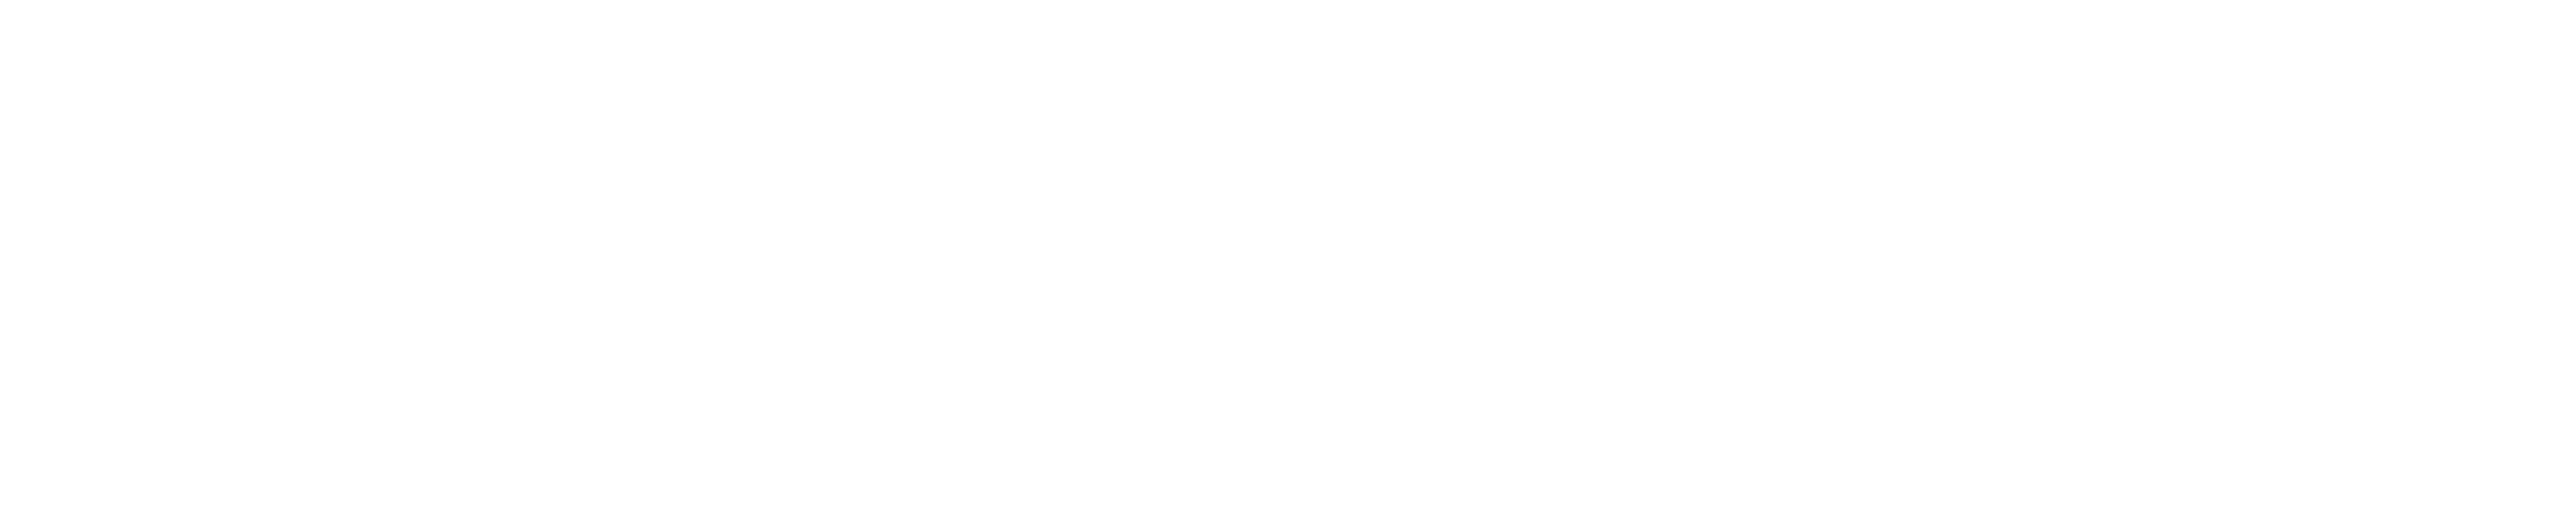 Phlash Fotography & Artistry